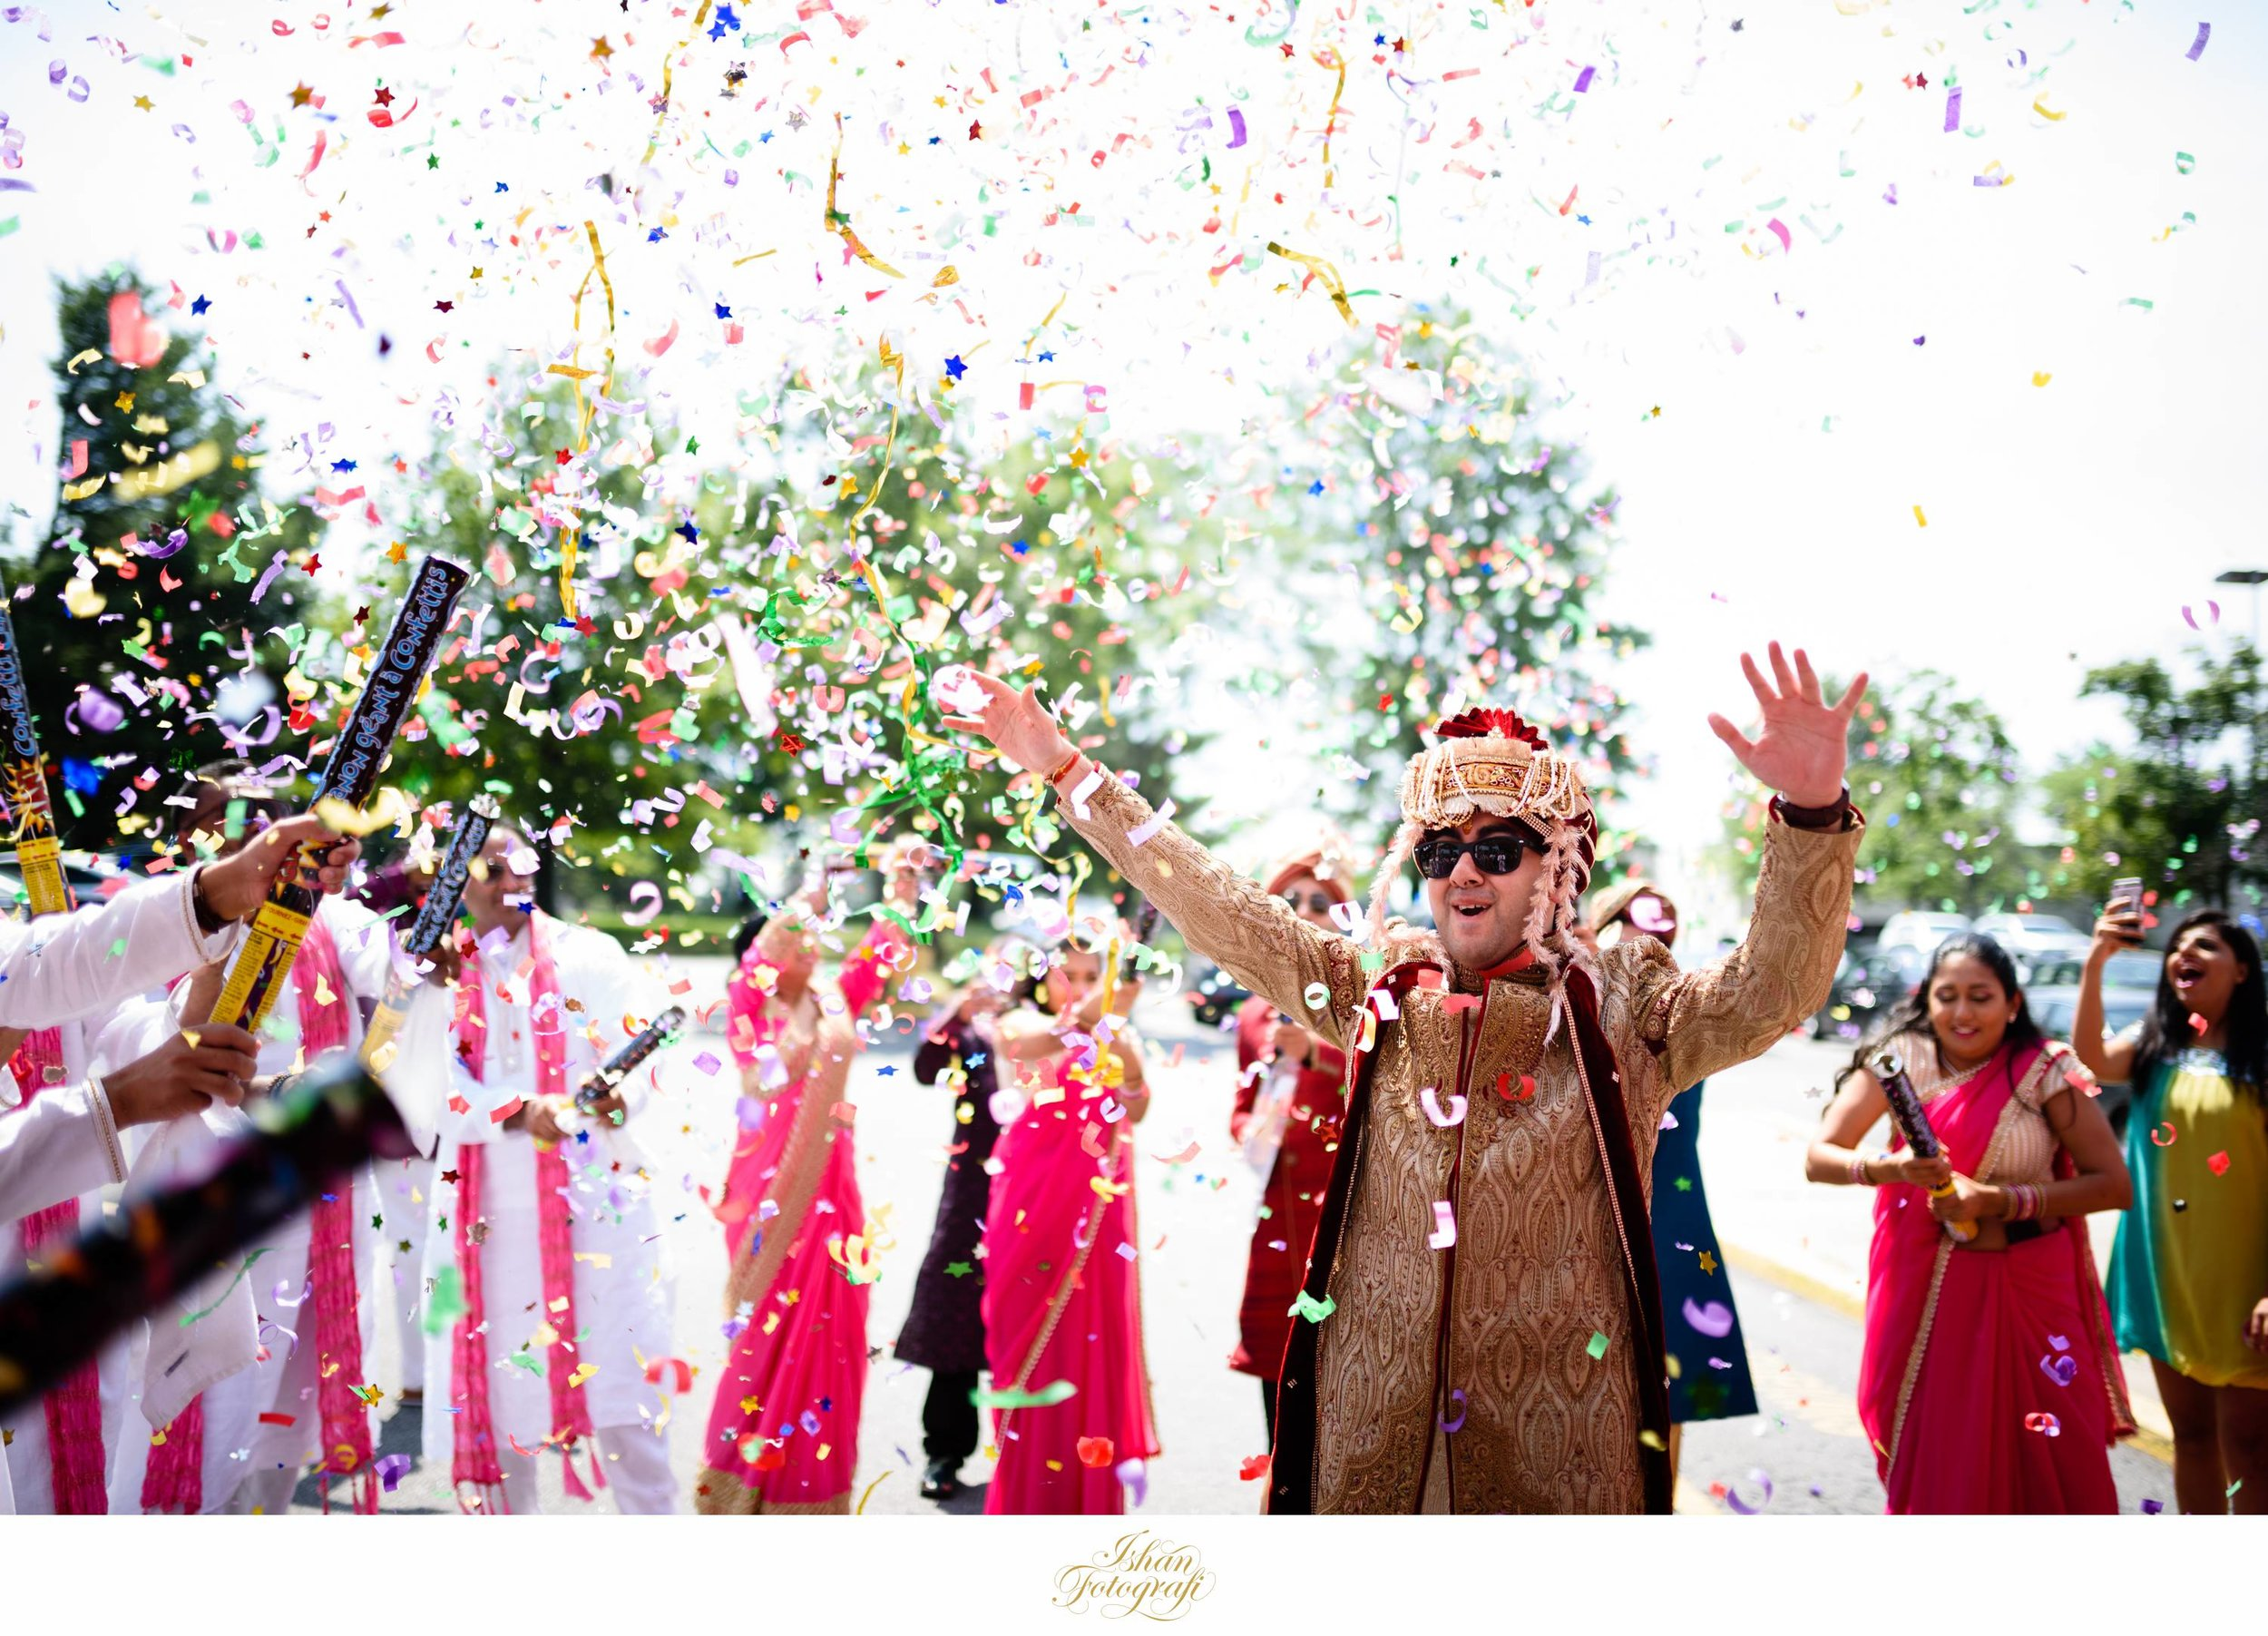 confetti done correctly! The bridal party used multiple confetti during the baraat ceremony. They popped them right before the bride's family received the groom